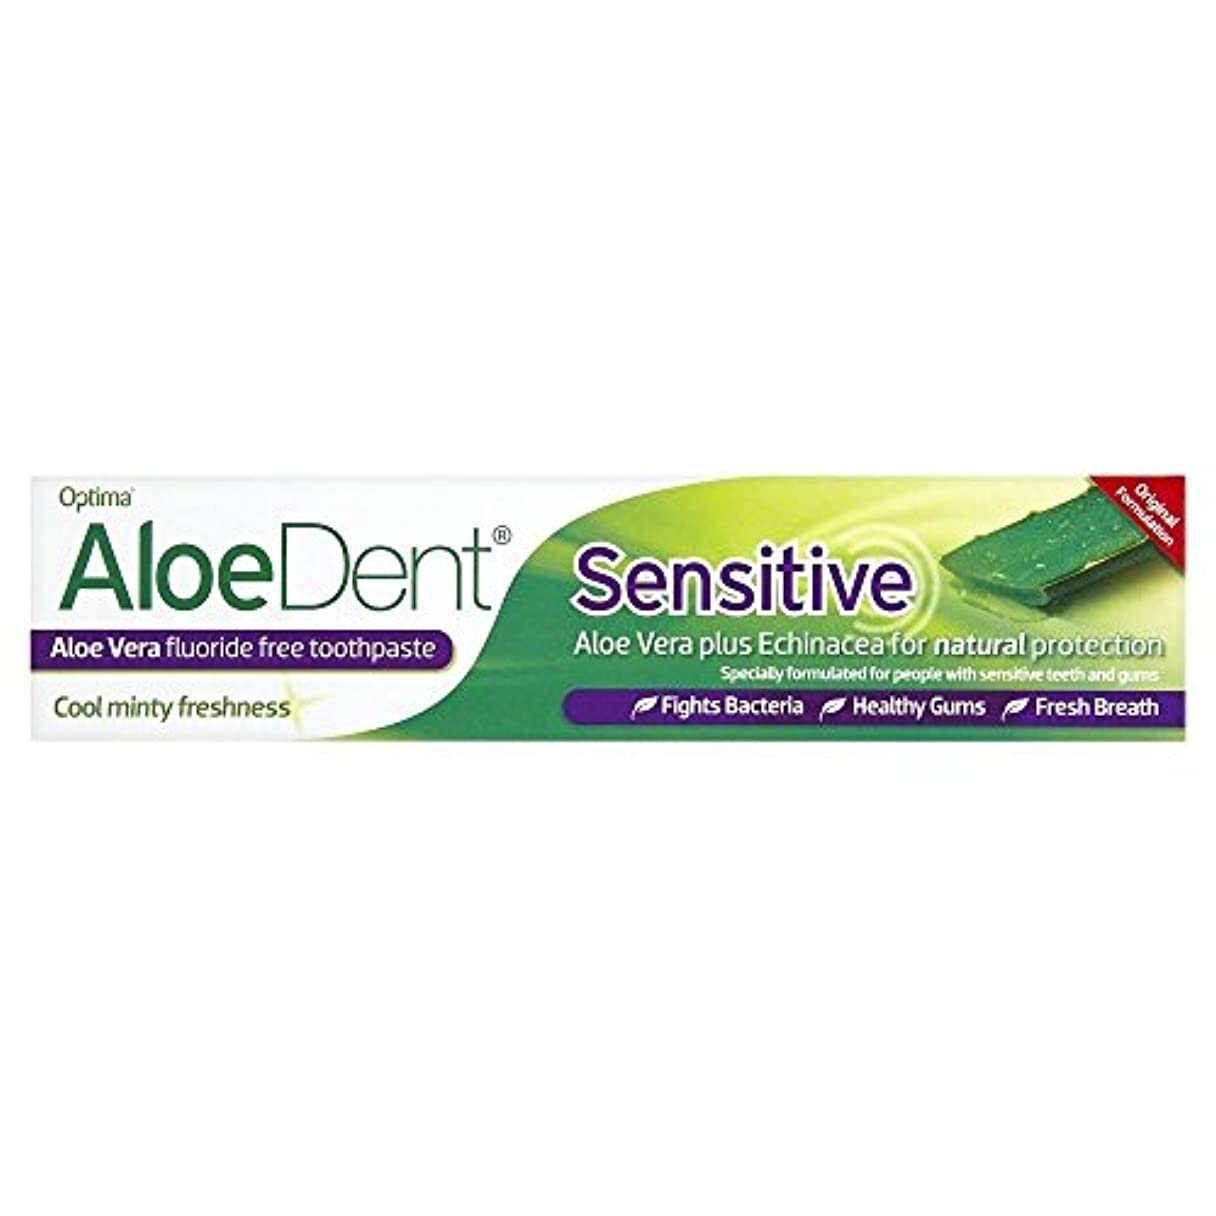 シミュレートする運動啓示AloeDent 100 ml Sensitive Aloe Vera Fluoride Free Toothpaste by Aloe Dent